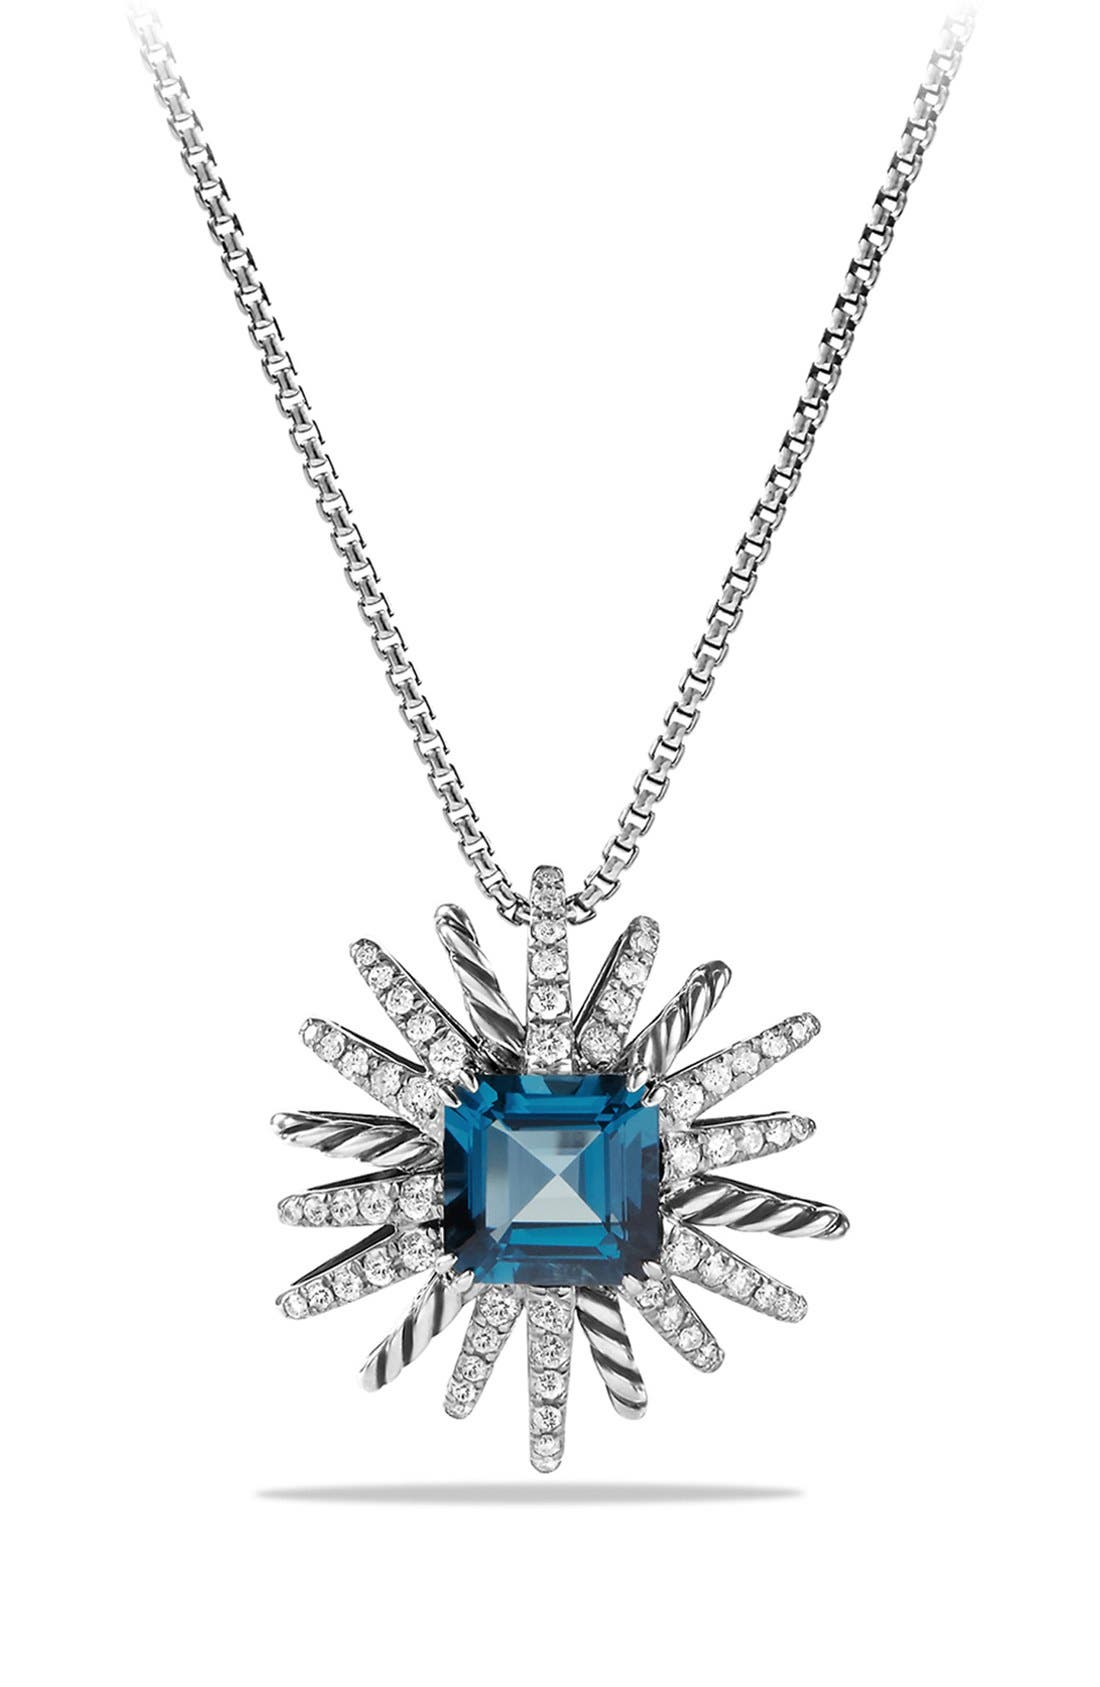 Main Image - David Yurman 'Starburst' Pendant Necklace